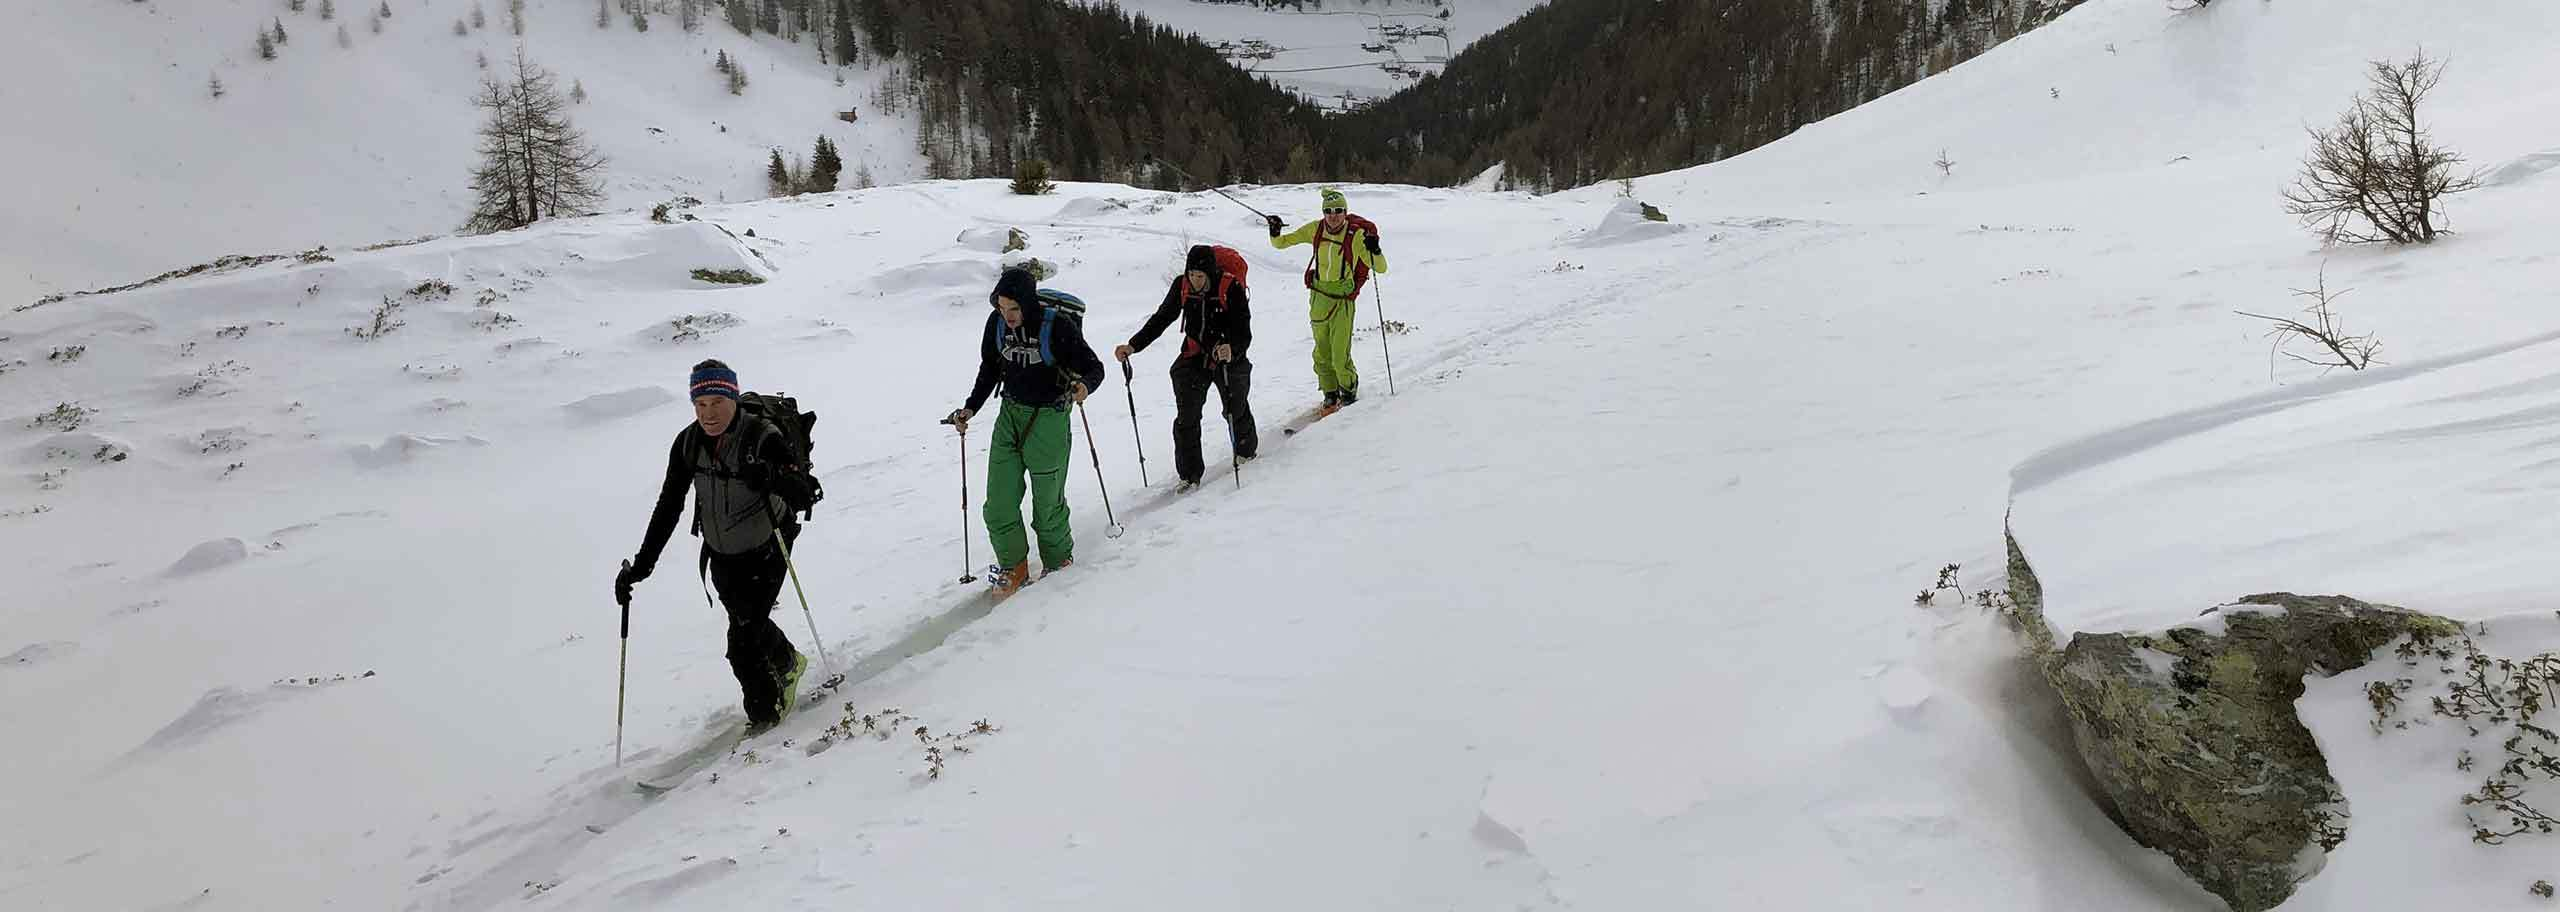 Ski Mountaineering in Limone Piemonte with Mountain Guide